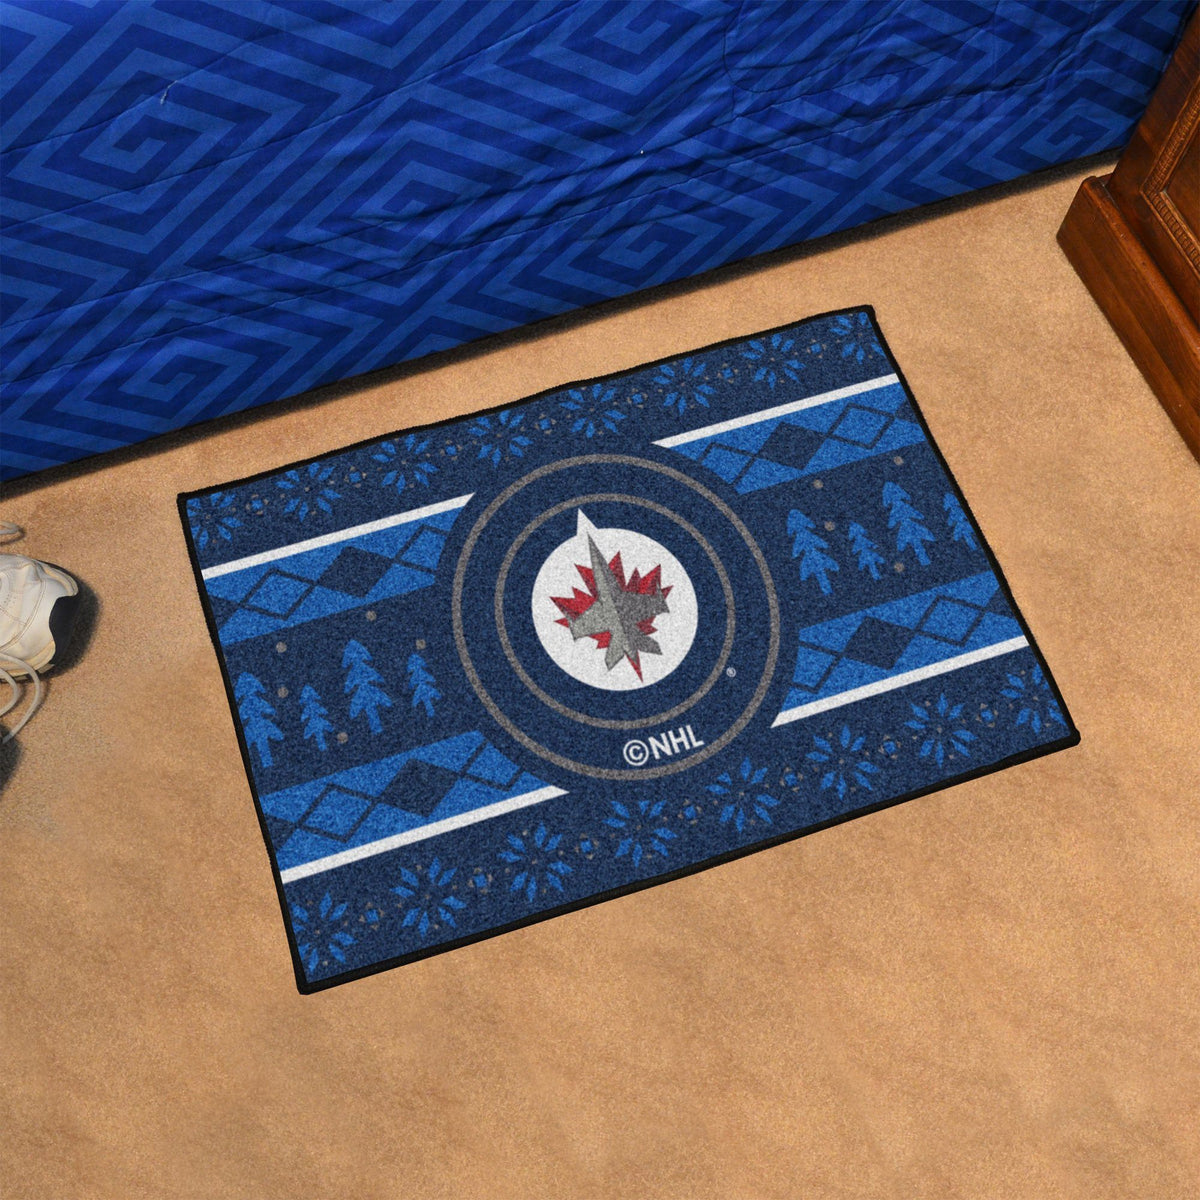 NHL - Holiday Sweater Starter Mat NHL Mats, Rectangular Mats, Holiday Sweater Starter Mat, NHL, Home Fan Mats Winnipeg Jets